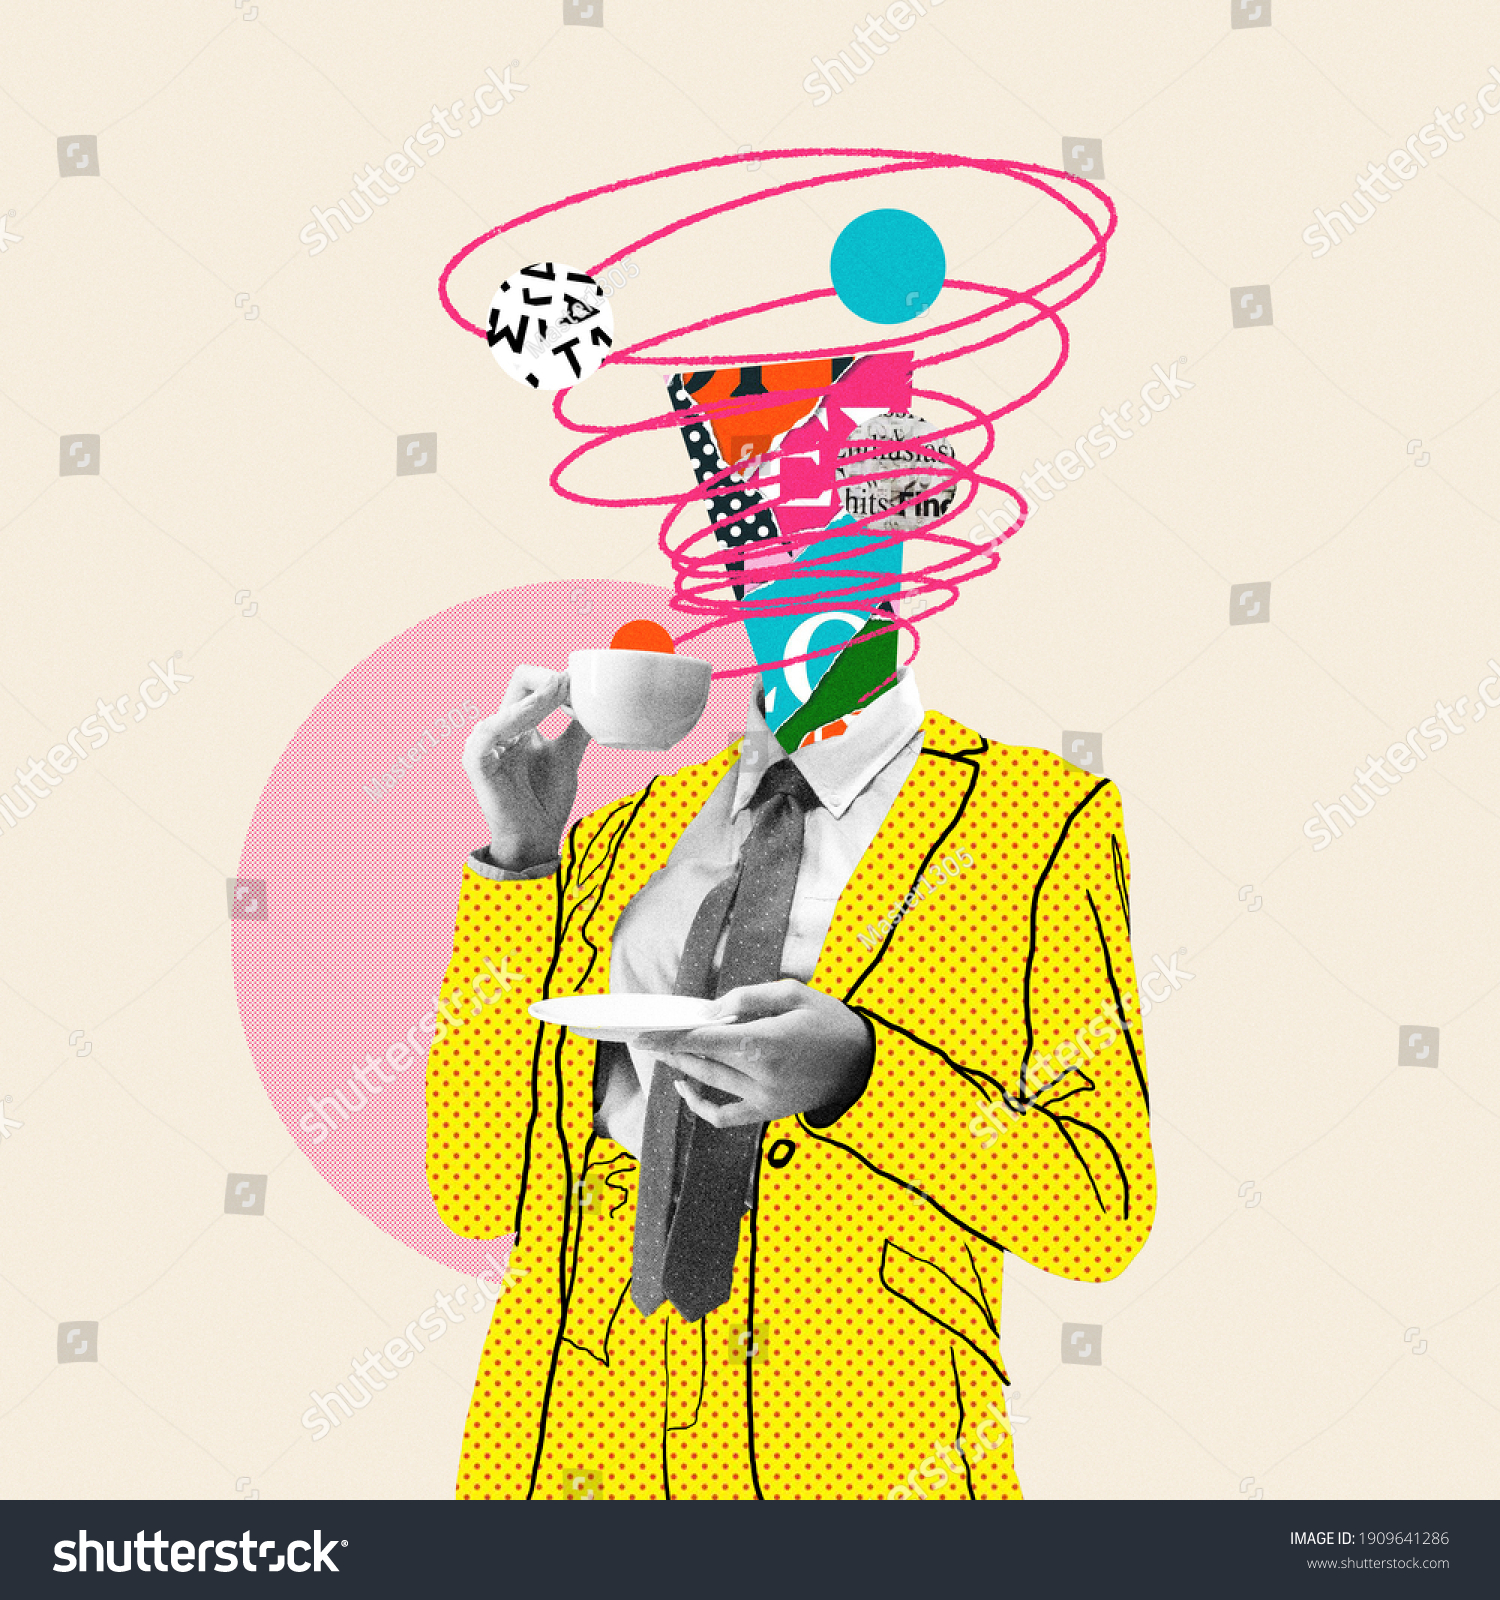 Morning coffee makes things better. Comics styled yellow suit. Modern design, contemporary art collage. Inspiration, idea, trendy urban magazine style. Negative space to insert your text or ad. #1909641286